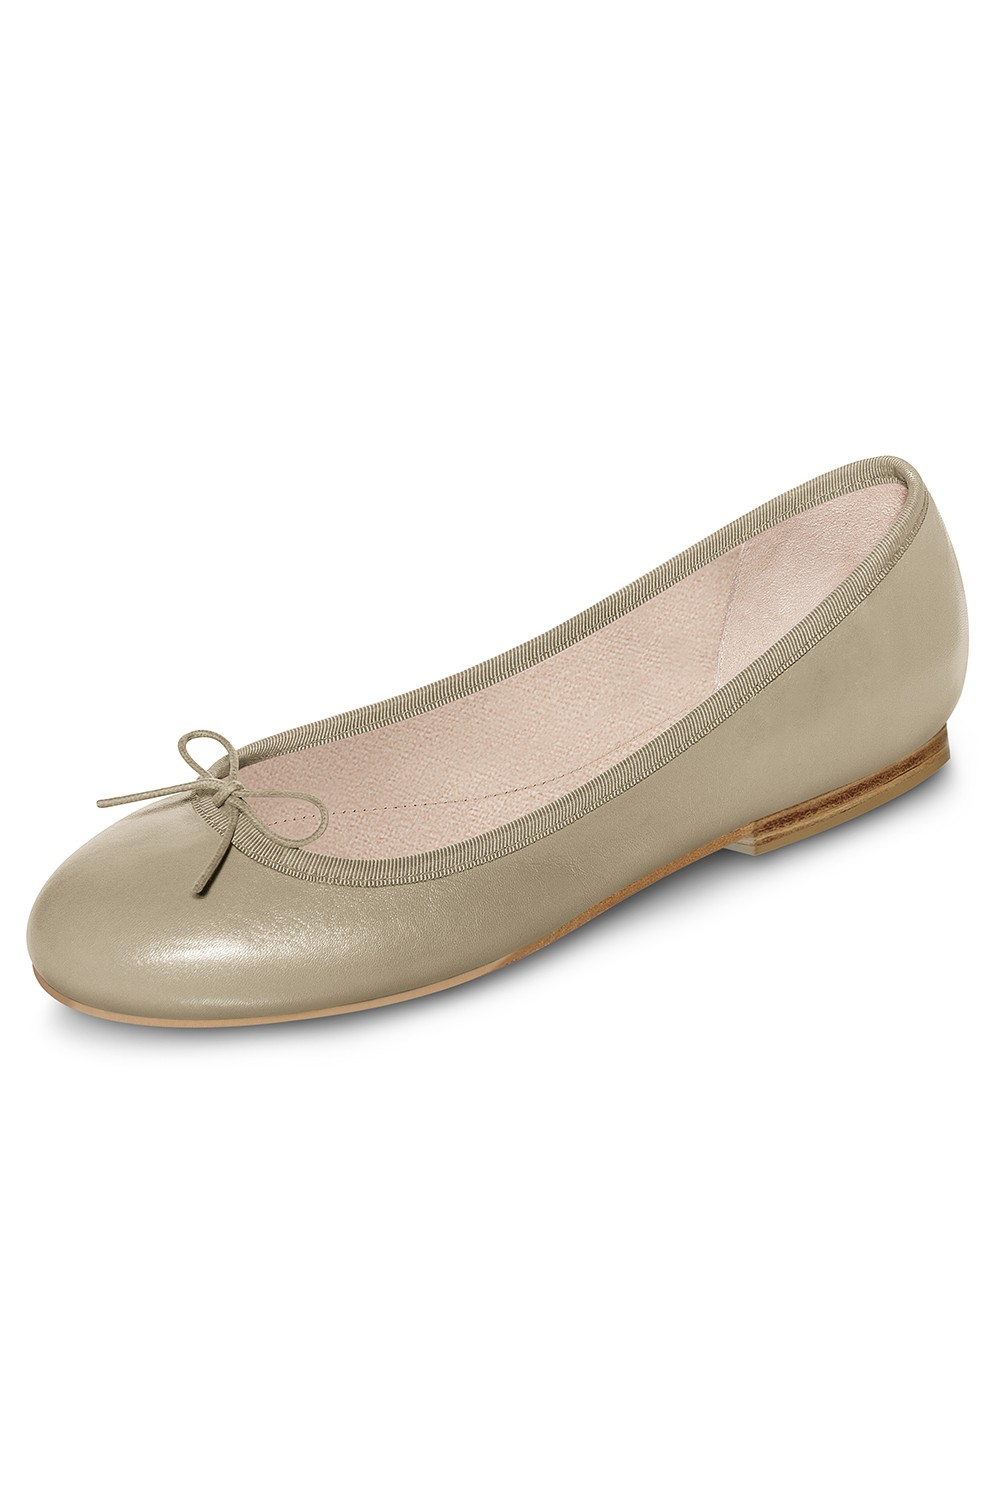 8c15778f3 BLOCH® Women's Ballet Flat Shoes - BLOCH® US Store